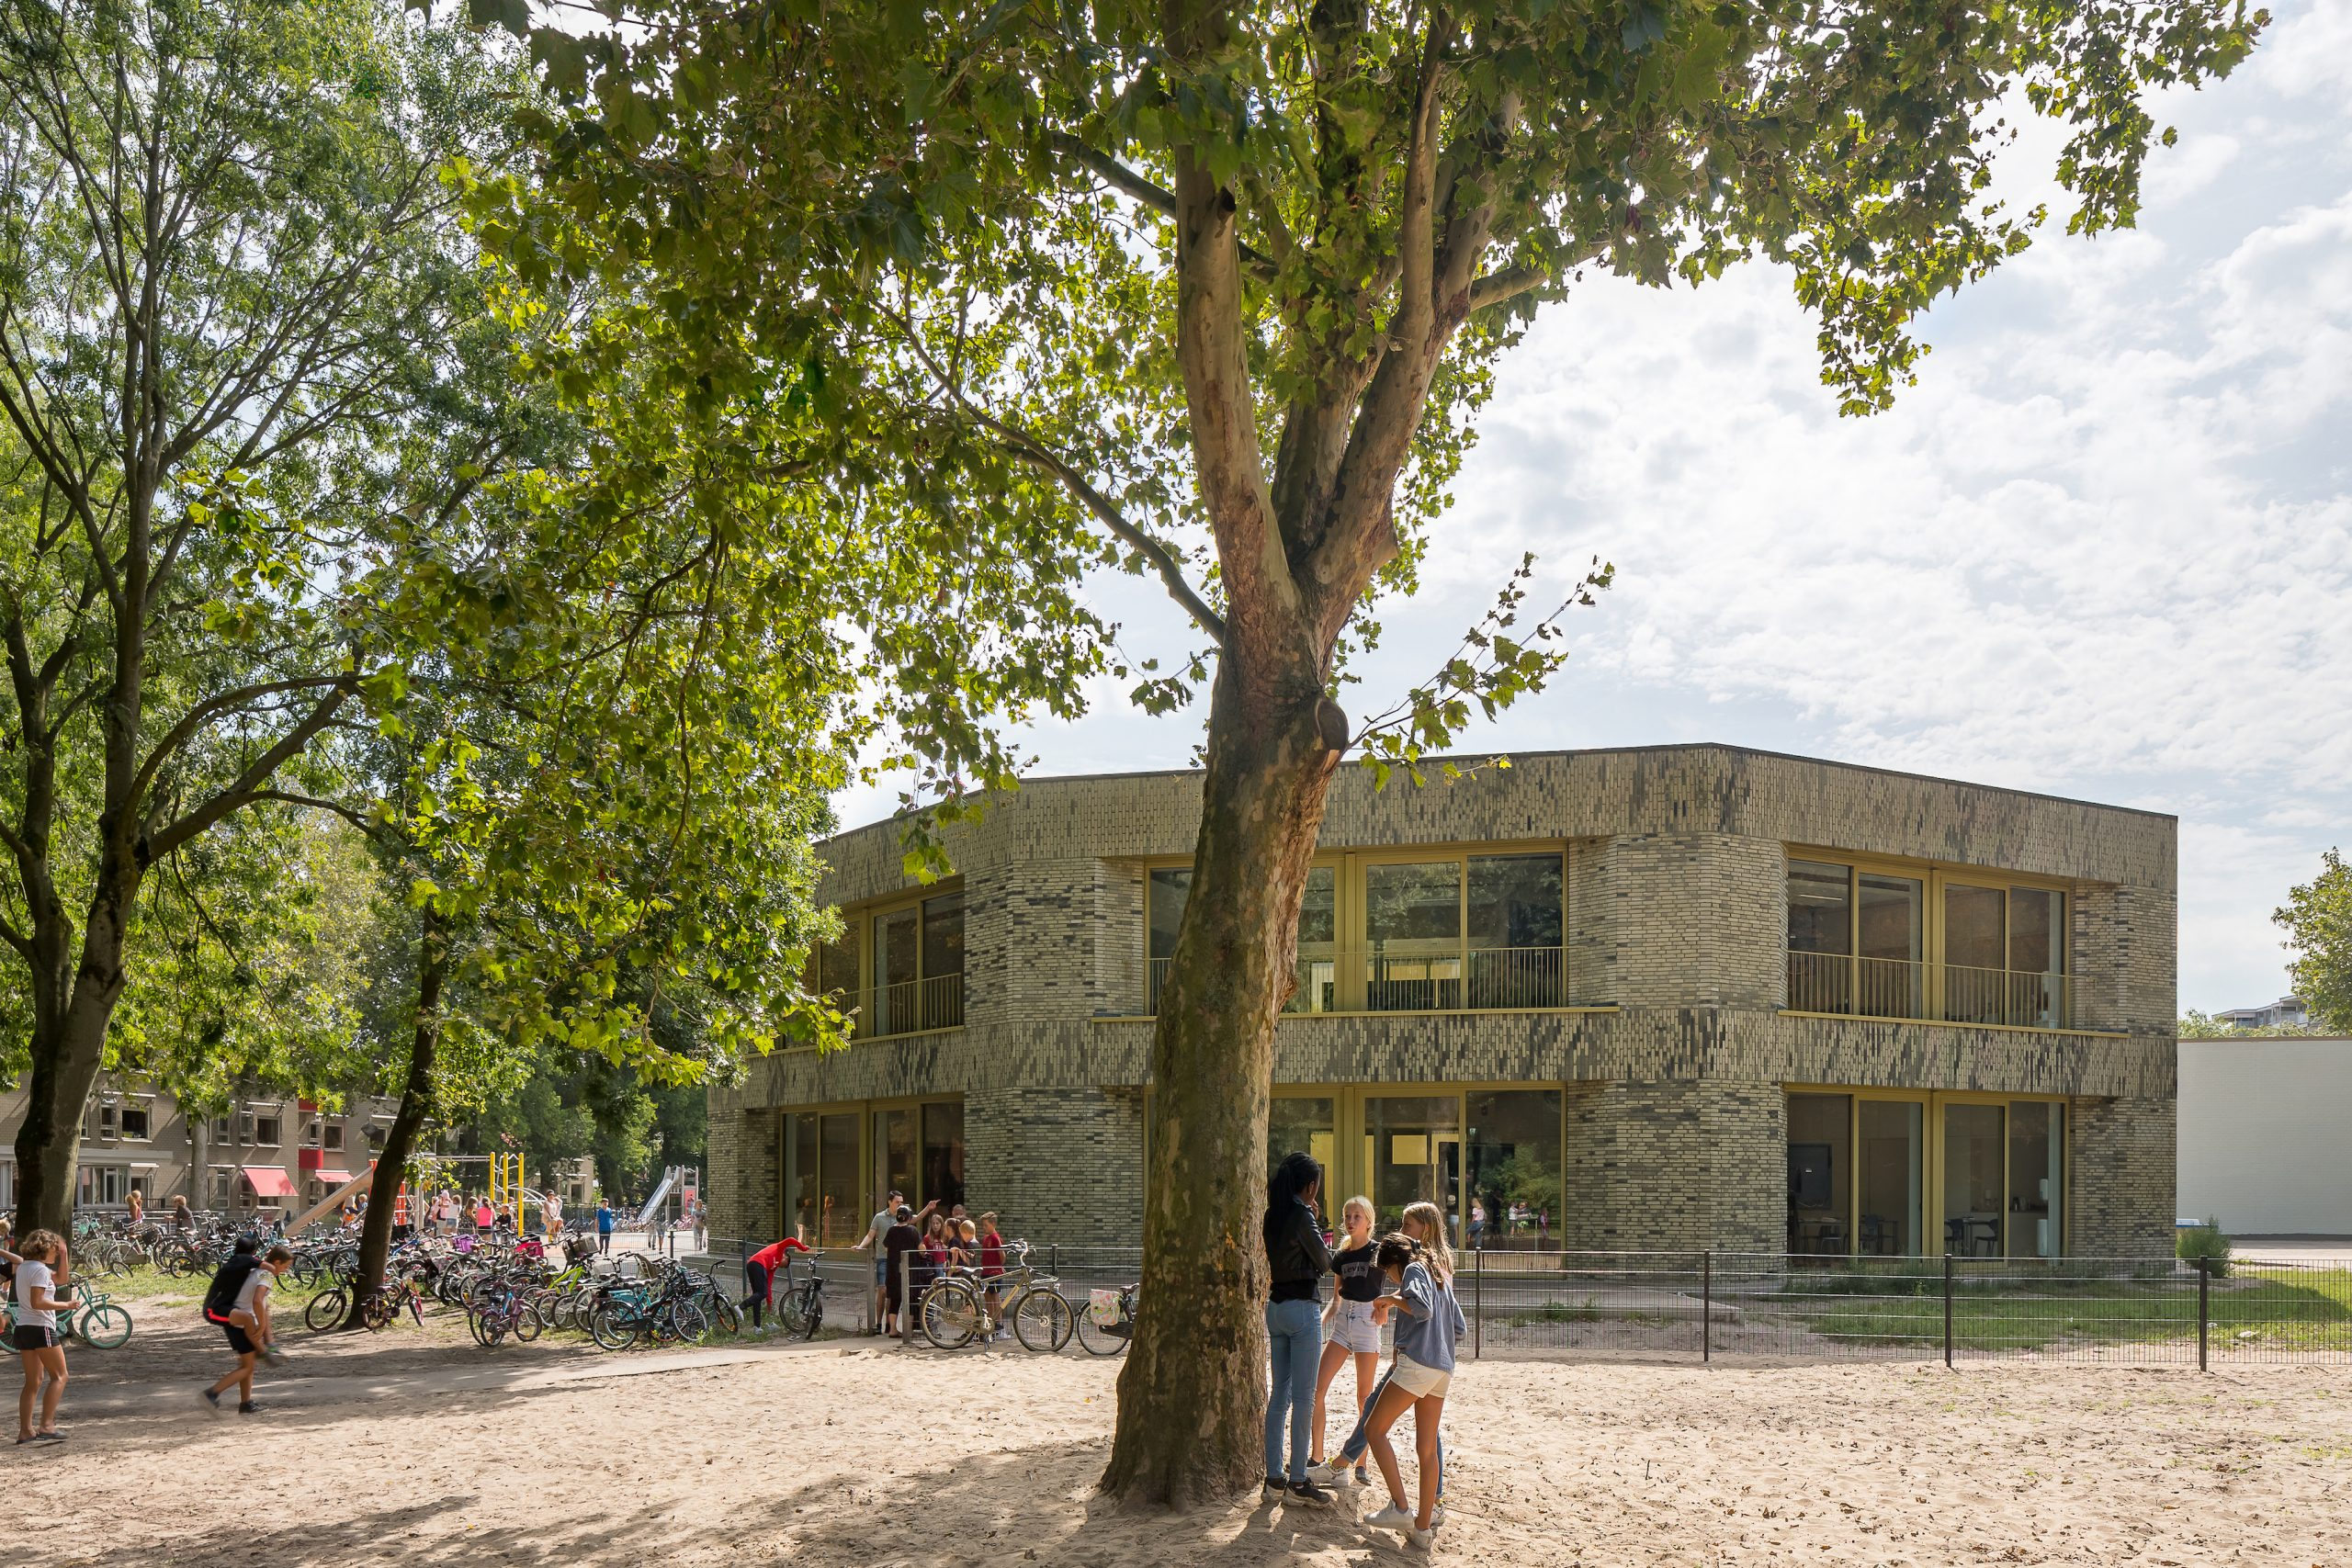 Molenwiek nominated for school of the year by Architectenweb